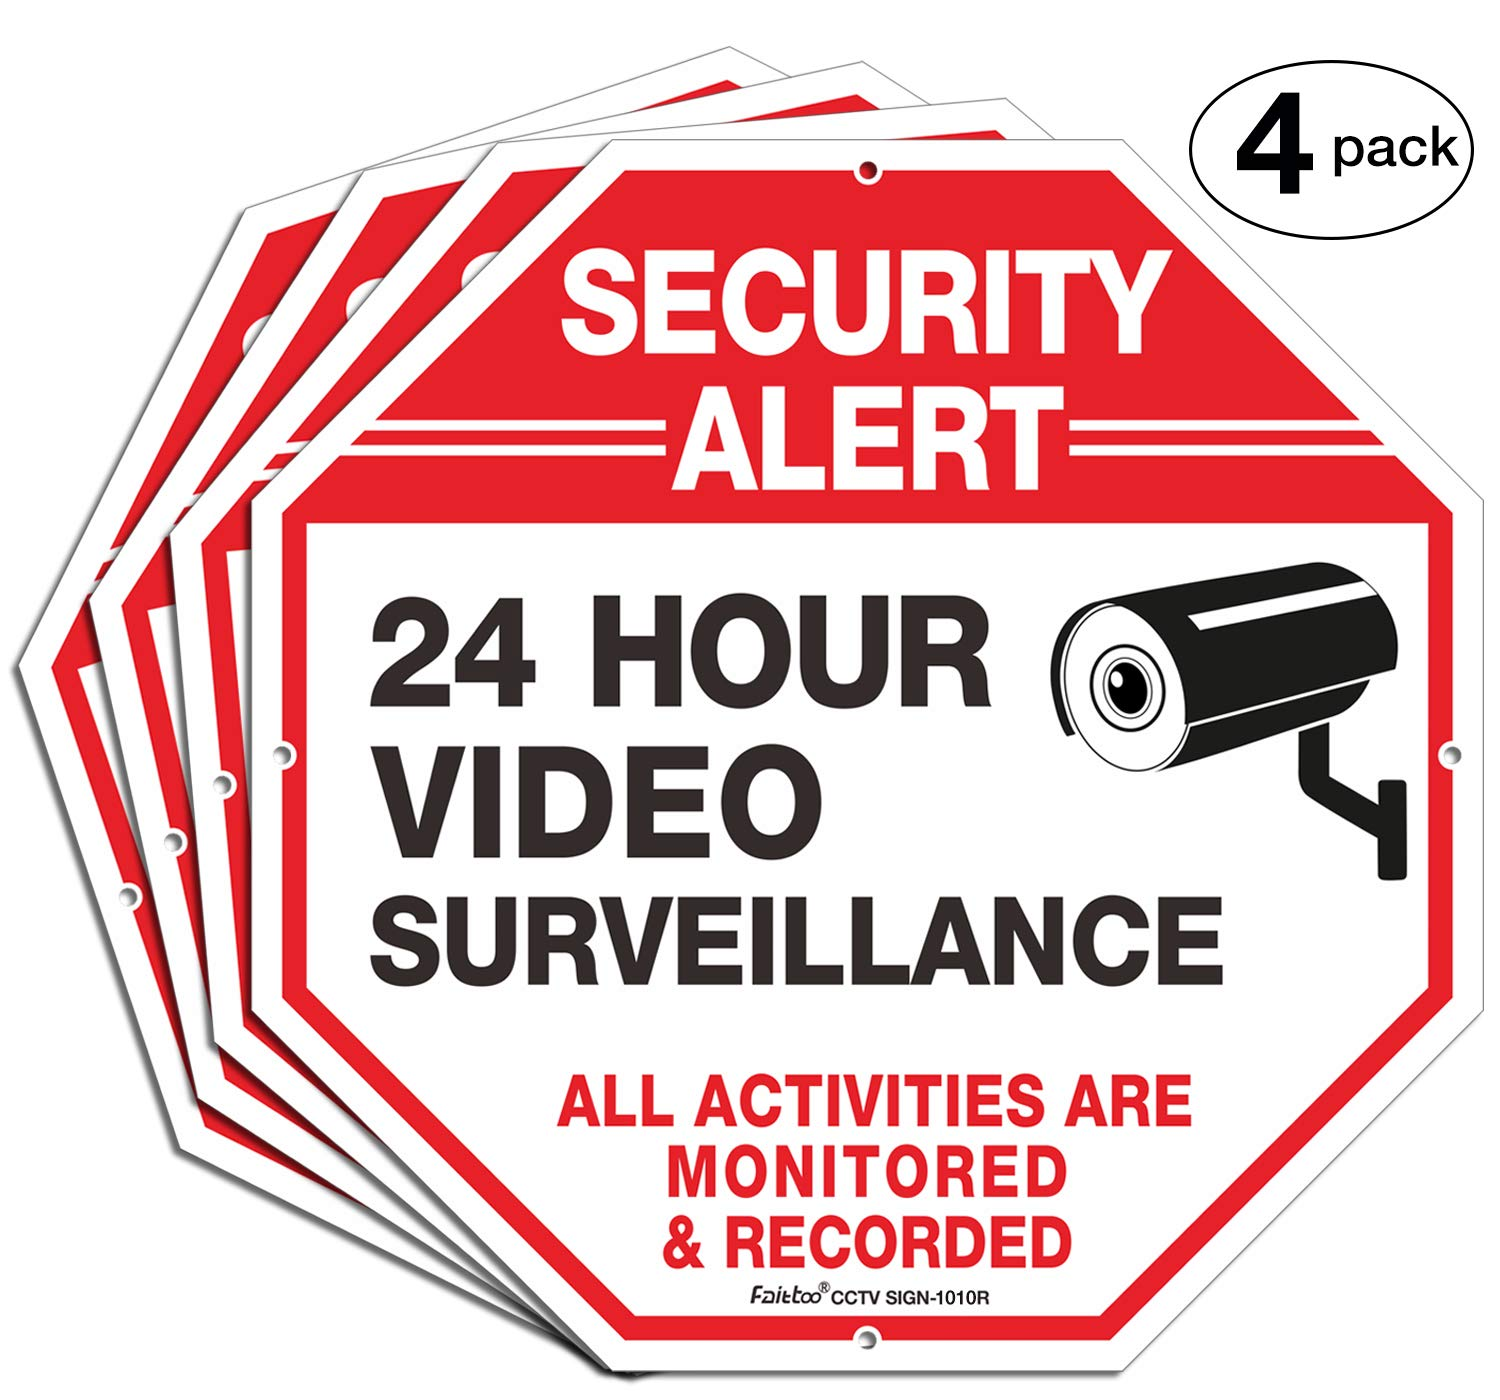 (4 Pack)''Security Alert, 24 Hour Video Surveillance, All Activities Monitored'' Signs,10 x 10 .040 Aluminum Reflective Warning Sign for Home Business CCTV Security Camera, Indoor or Outdoor Use by Faittoo